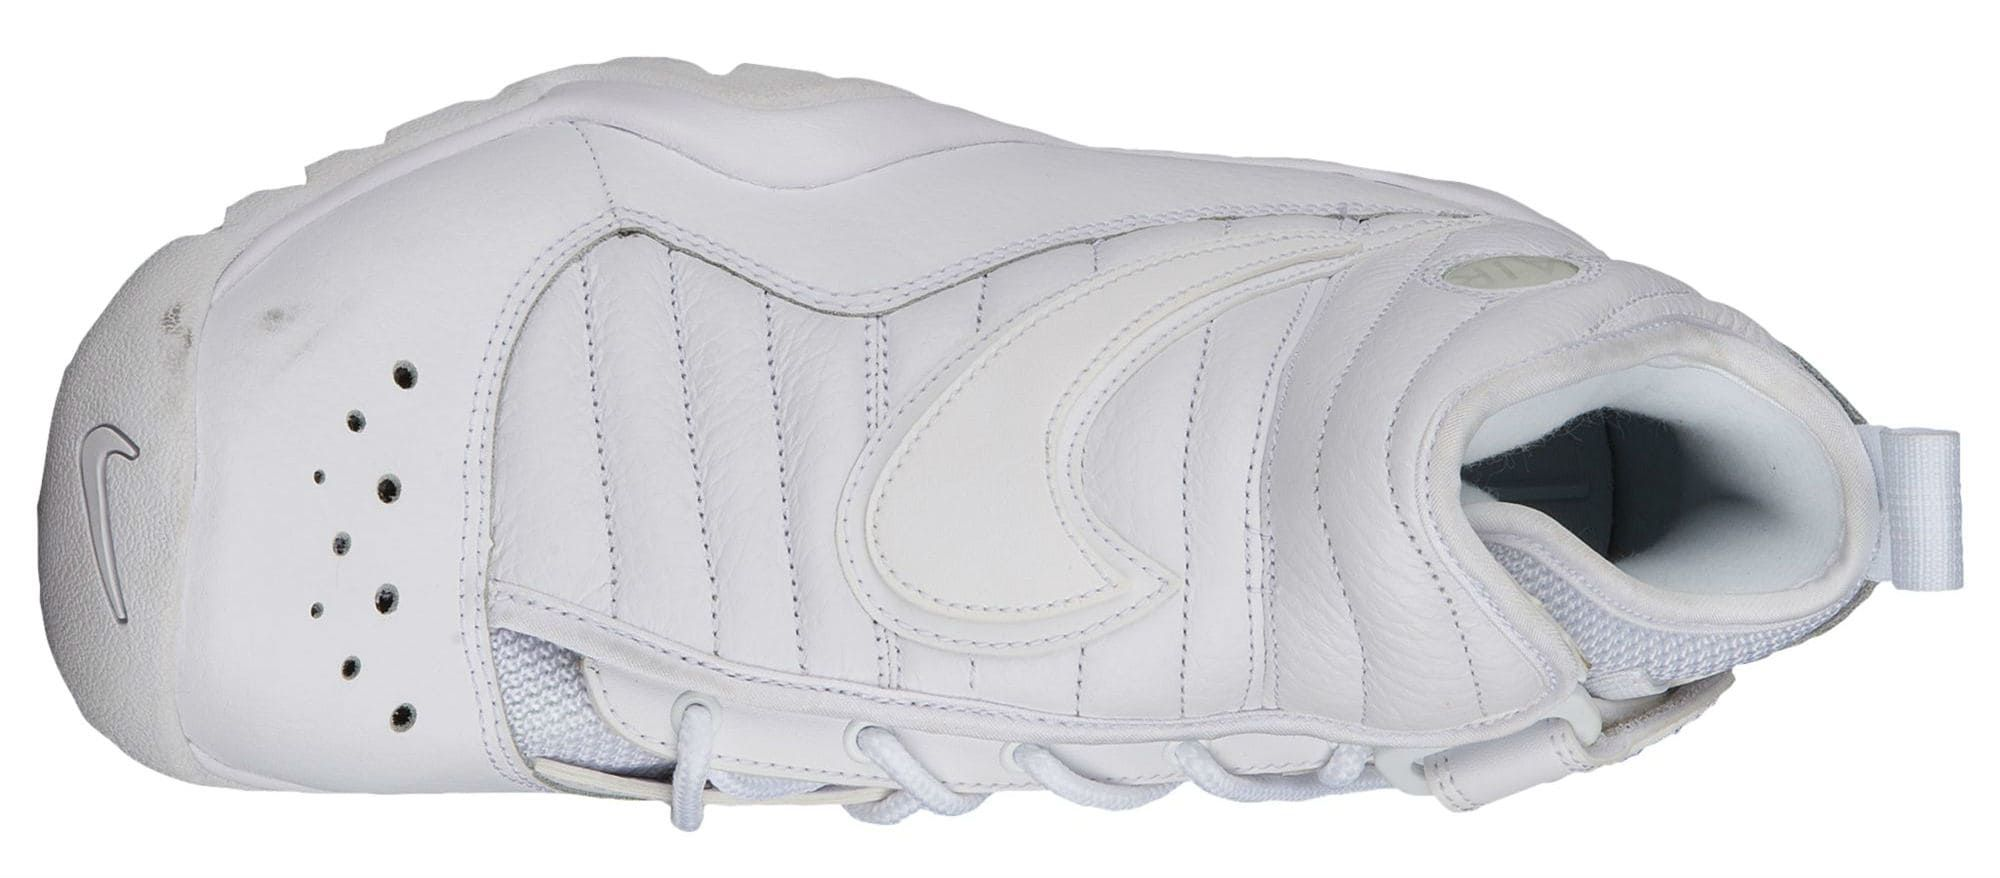 Nike Air Shake Ndestrukt All-White Release Date Top 880869-101 ... 4a1468308